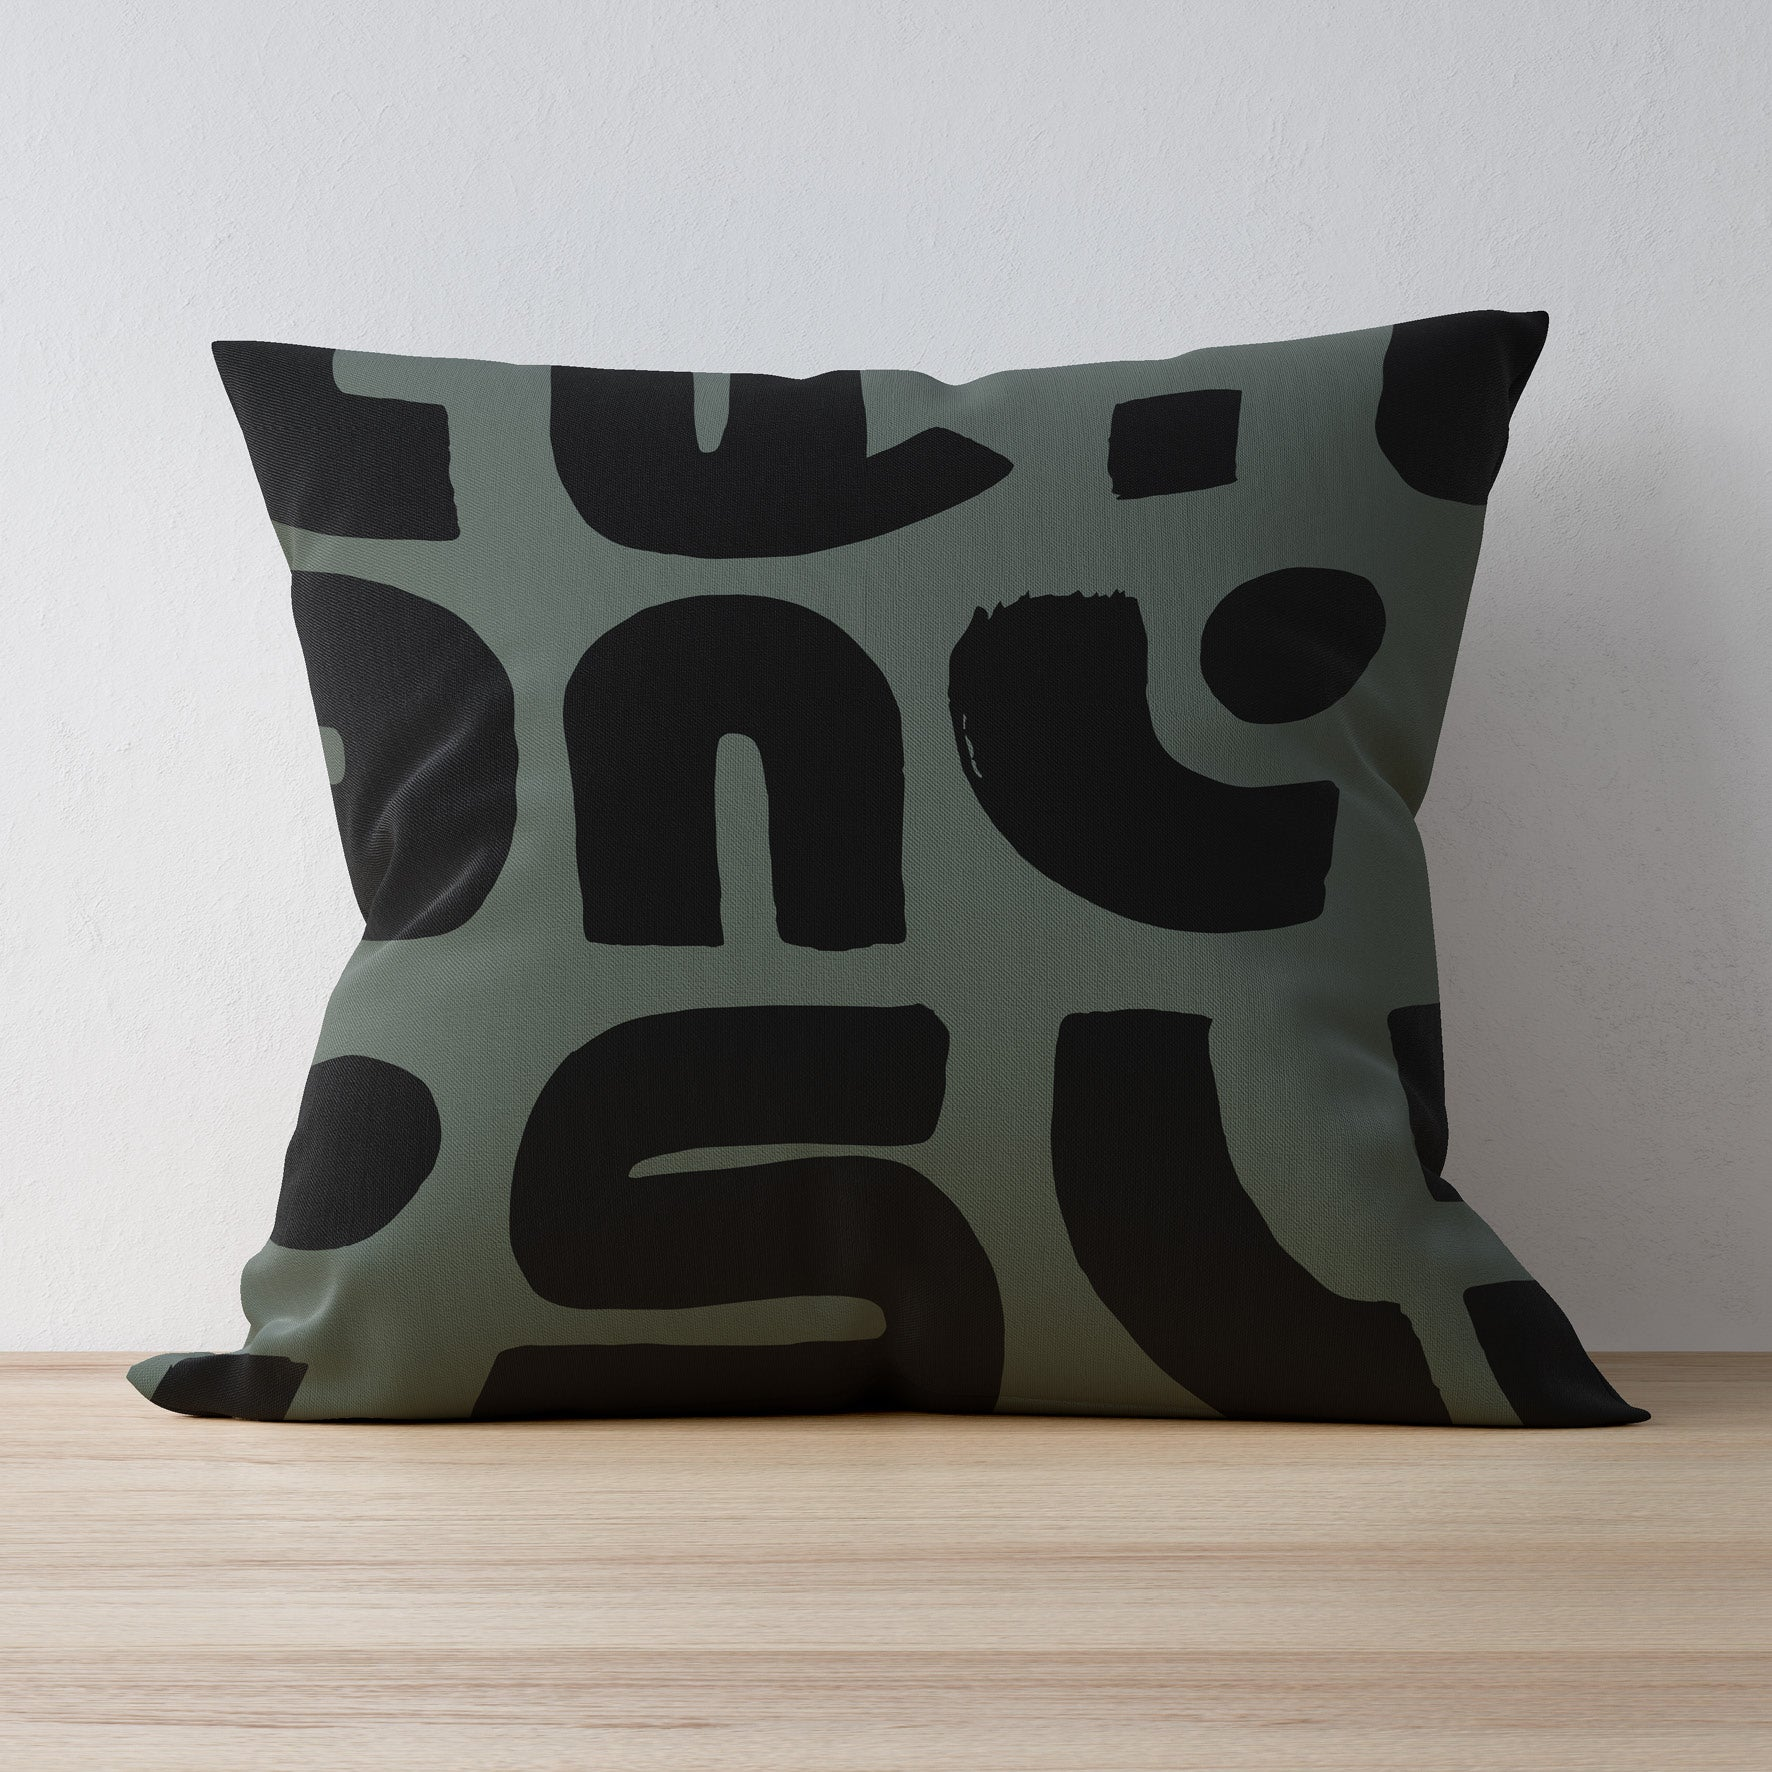 Becks Harrop - Bauhaus Pillow Case